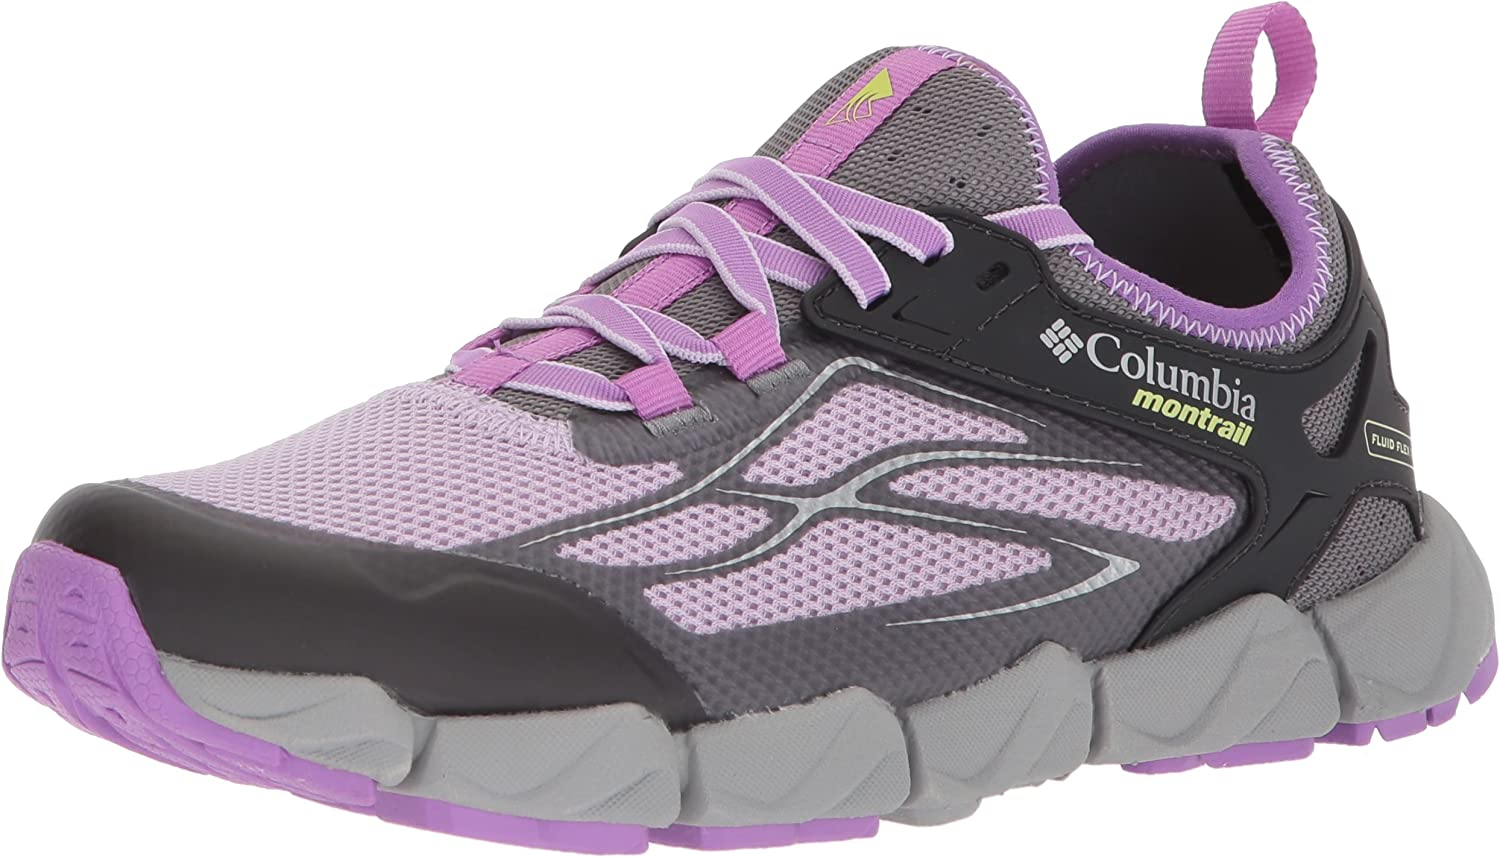 Columbia Women s Fluidflex X.S.R. Trail Running Shoe, Phantom Purple, Nappa Green, 8 B US